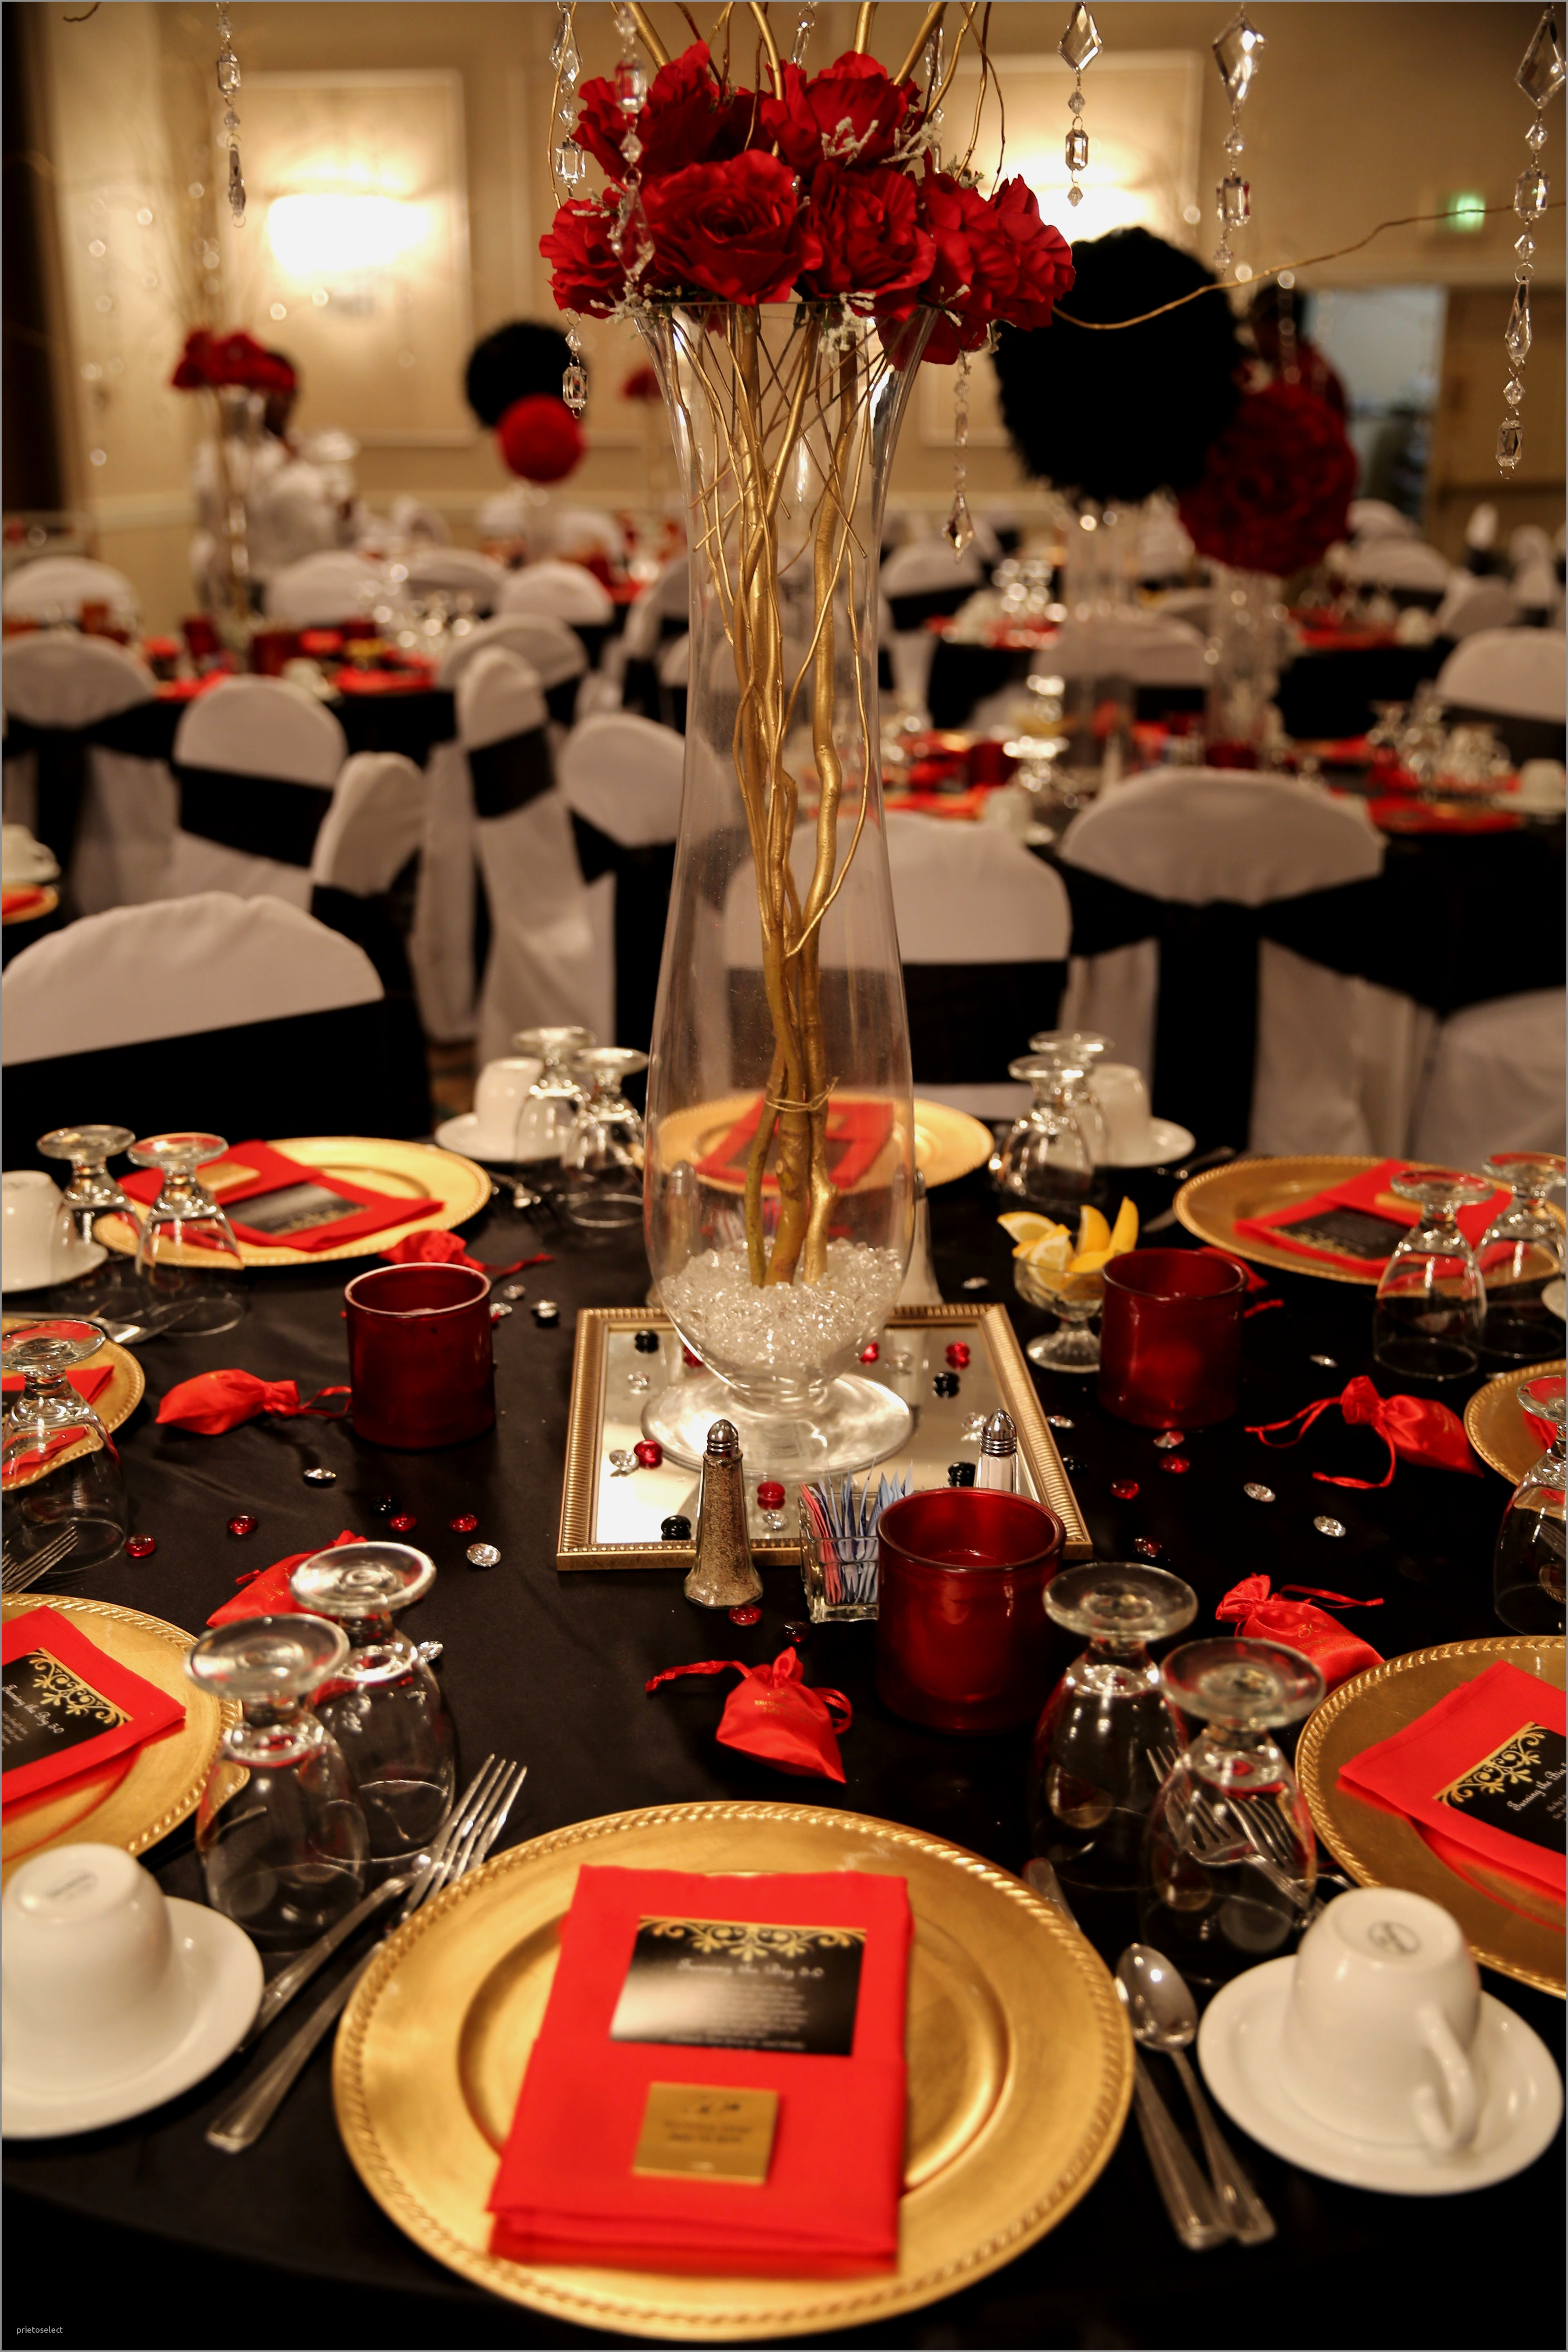 autumn vase filler ideas of 75th birthday table decorations awesome a¢e†a 15 cheap and easy diy pertaining to 75th birthday table decorations best of red black and gold table decorations for 50th birthday party